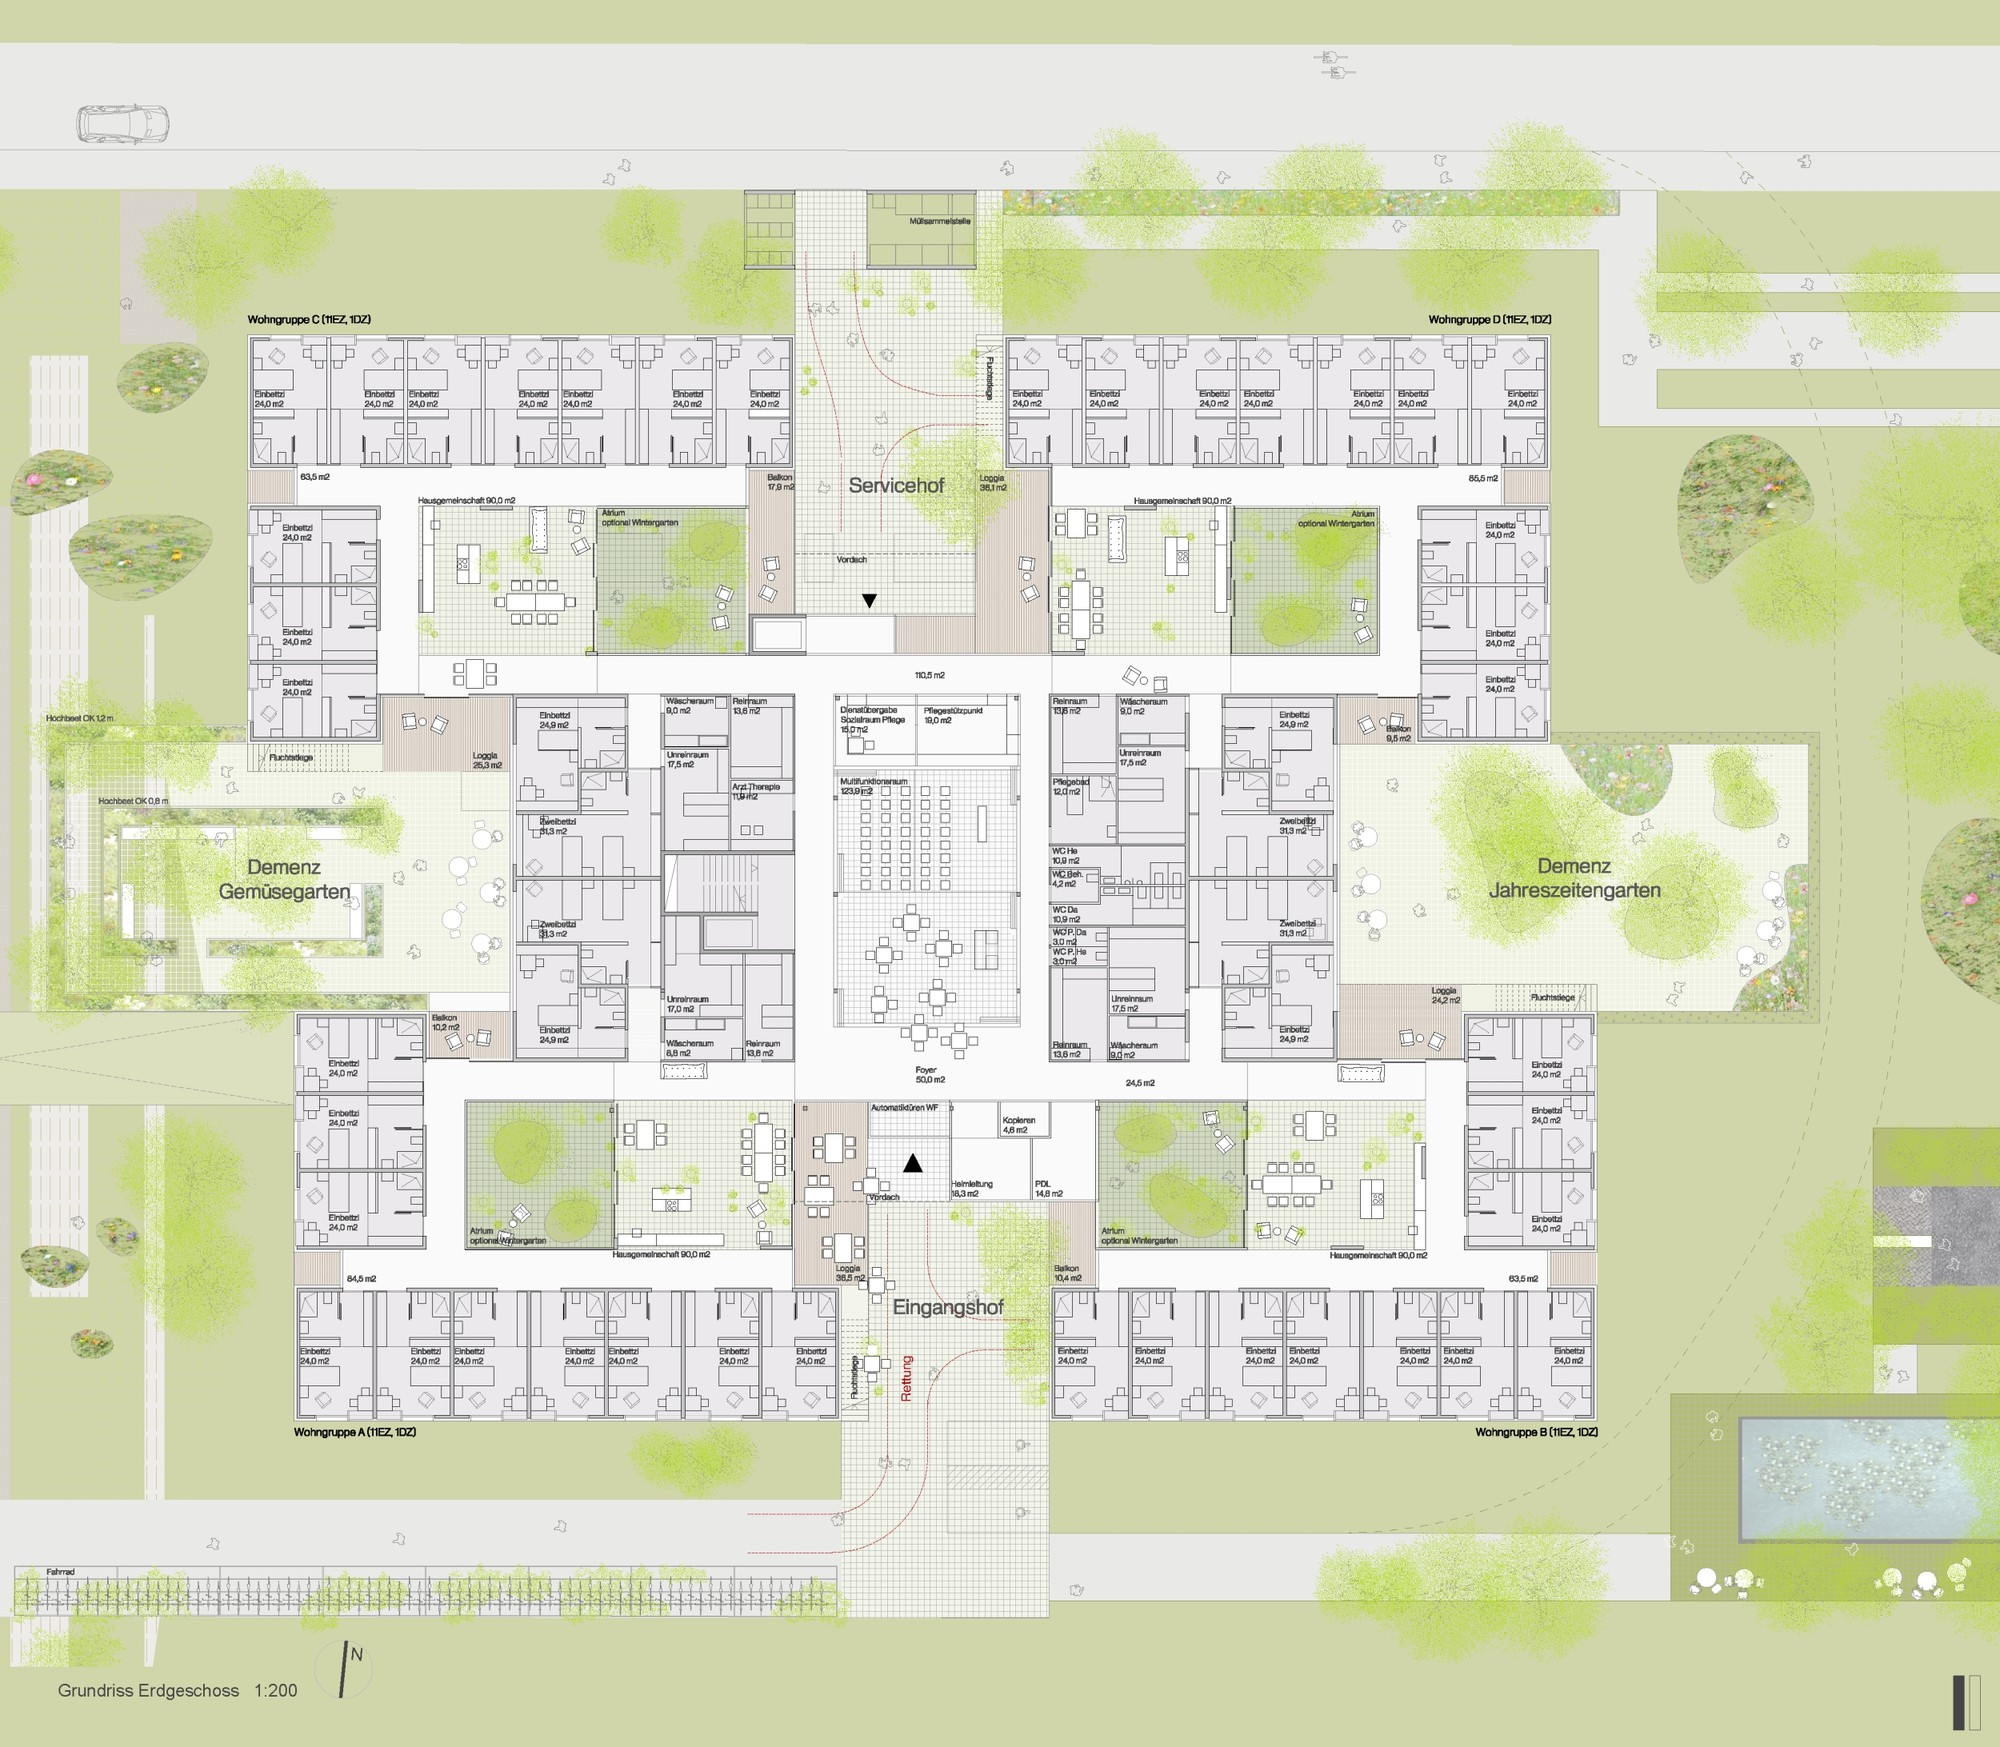 Lar de idosos peter rosegger dietger wissounig for Retirement home design plans